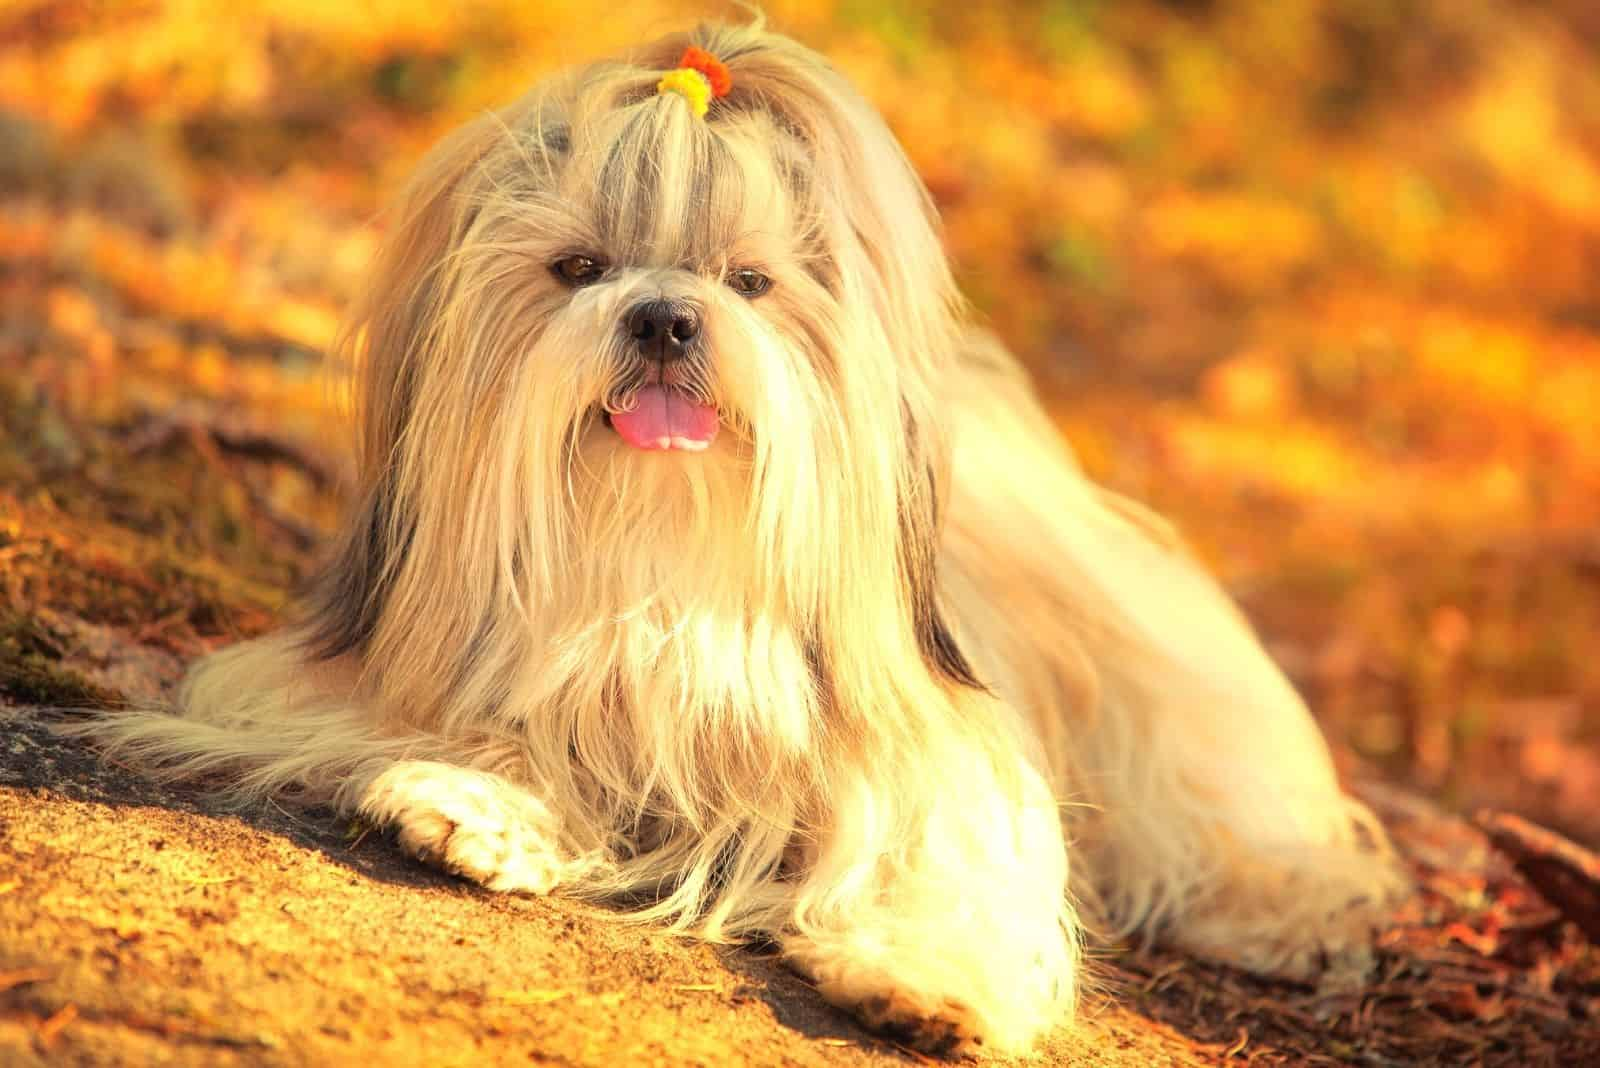 shih-tzu lying down in the mountain on sunset golden colors